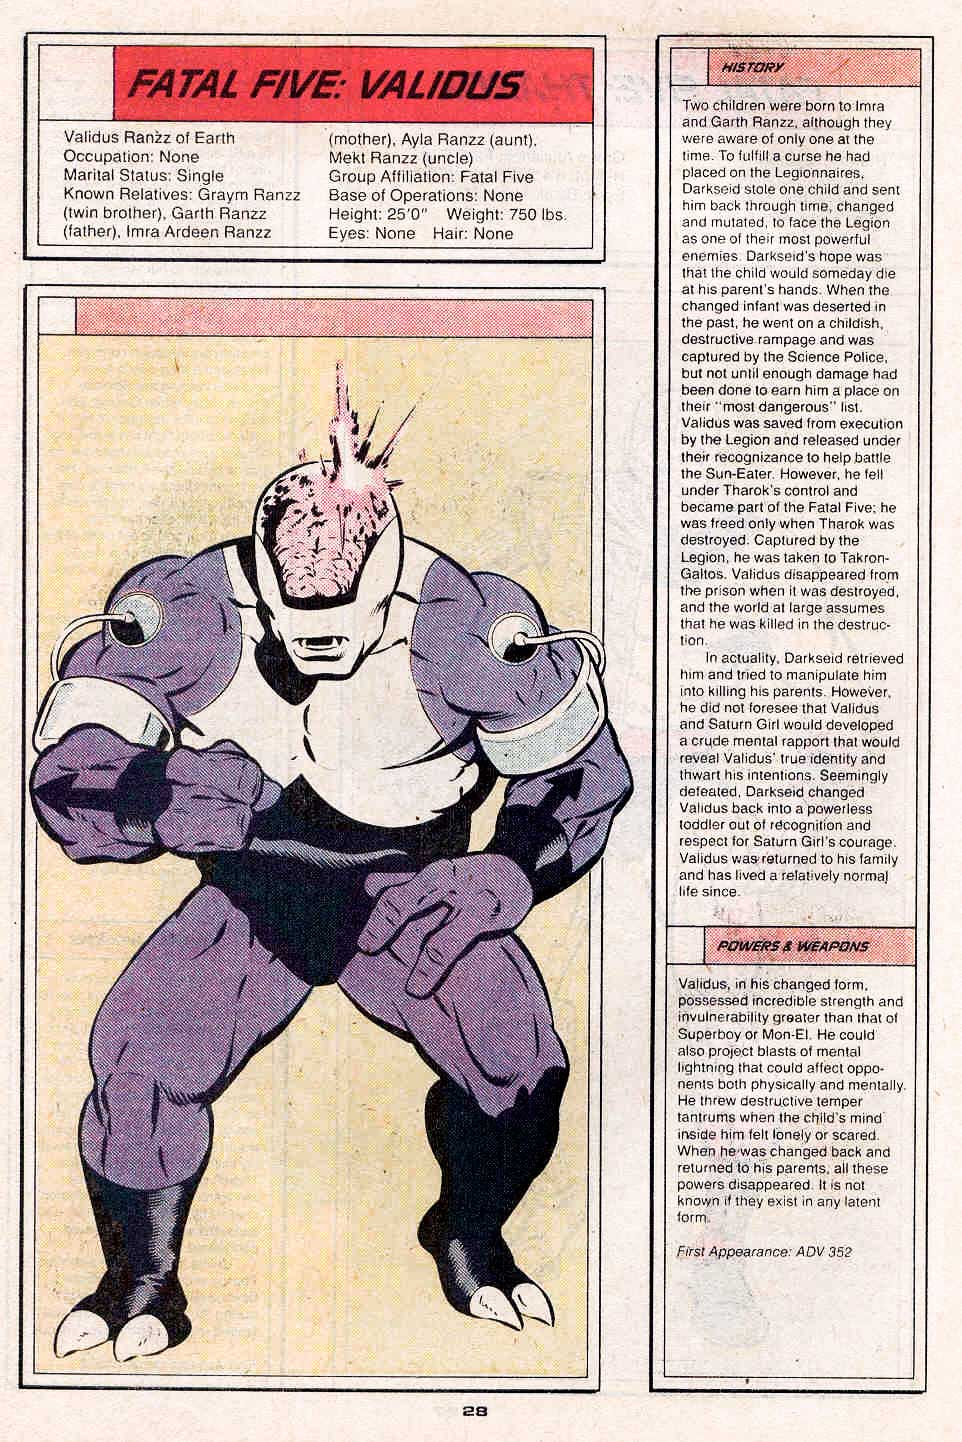 Validus by Keith Giffen and Larry Mahlstedt - Who's Who in the Legion of Super-Heroes #2